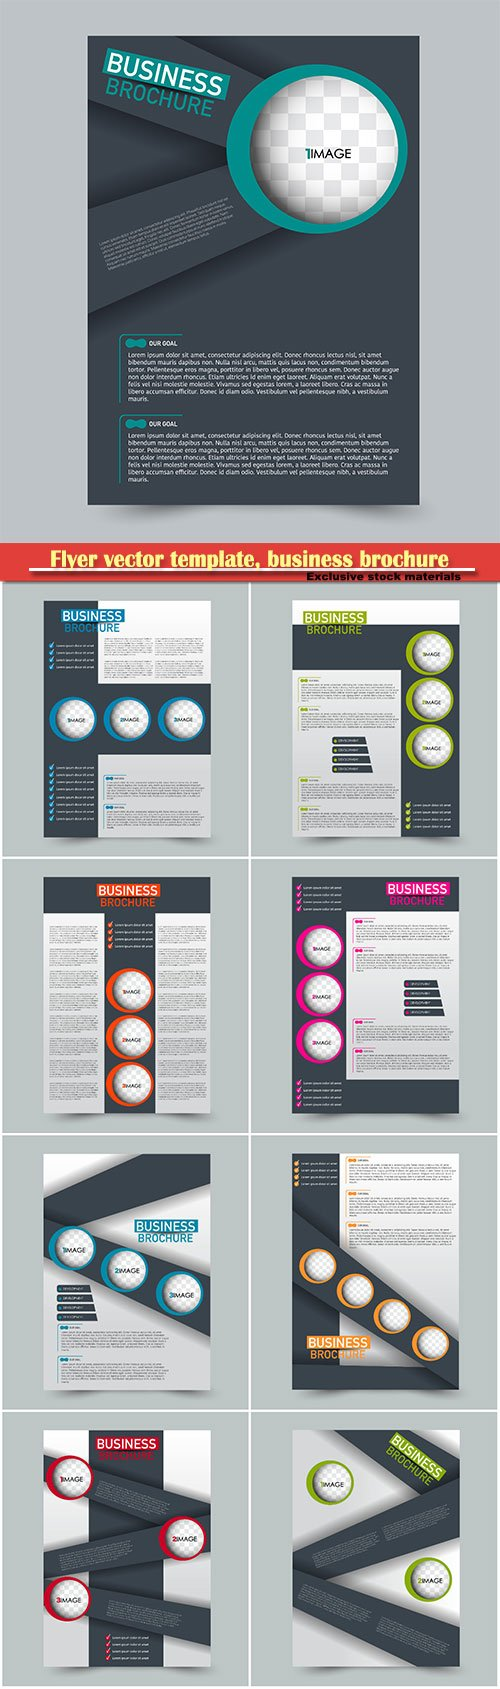 Flyer vector template, business brochure, magazine cover # 13